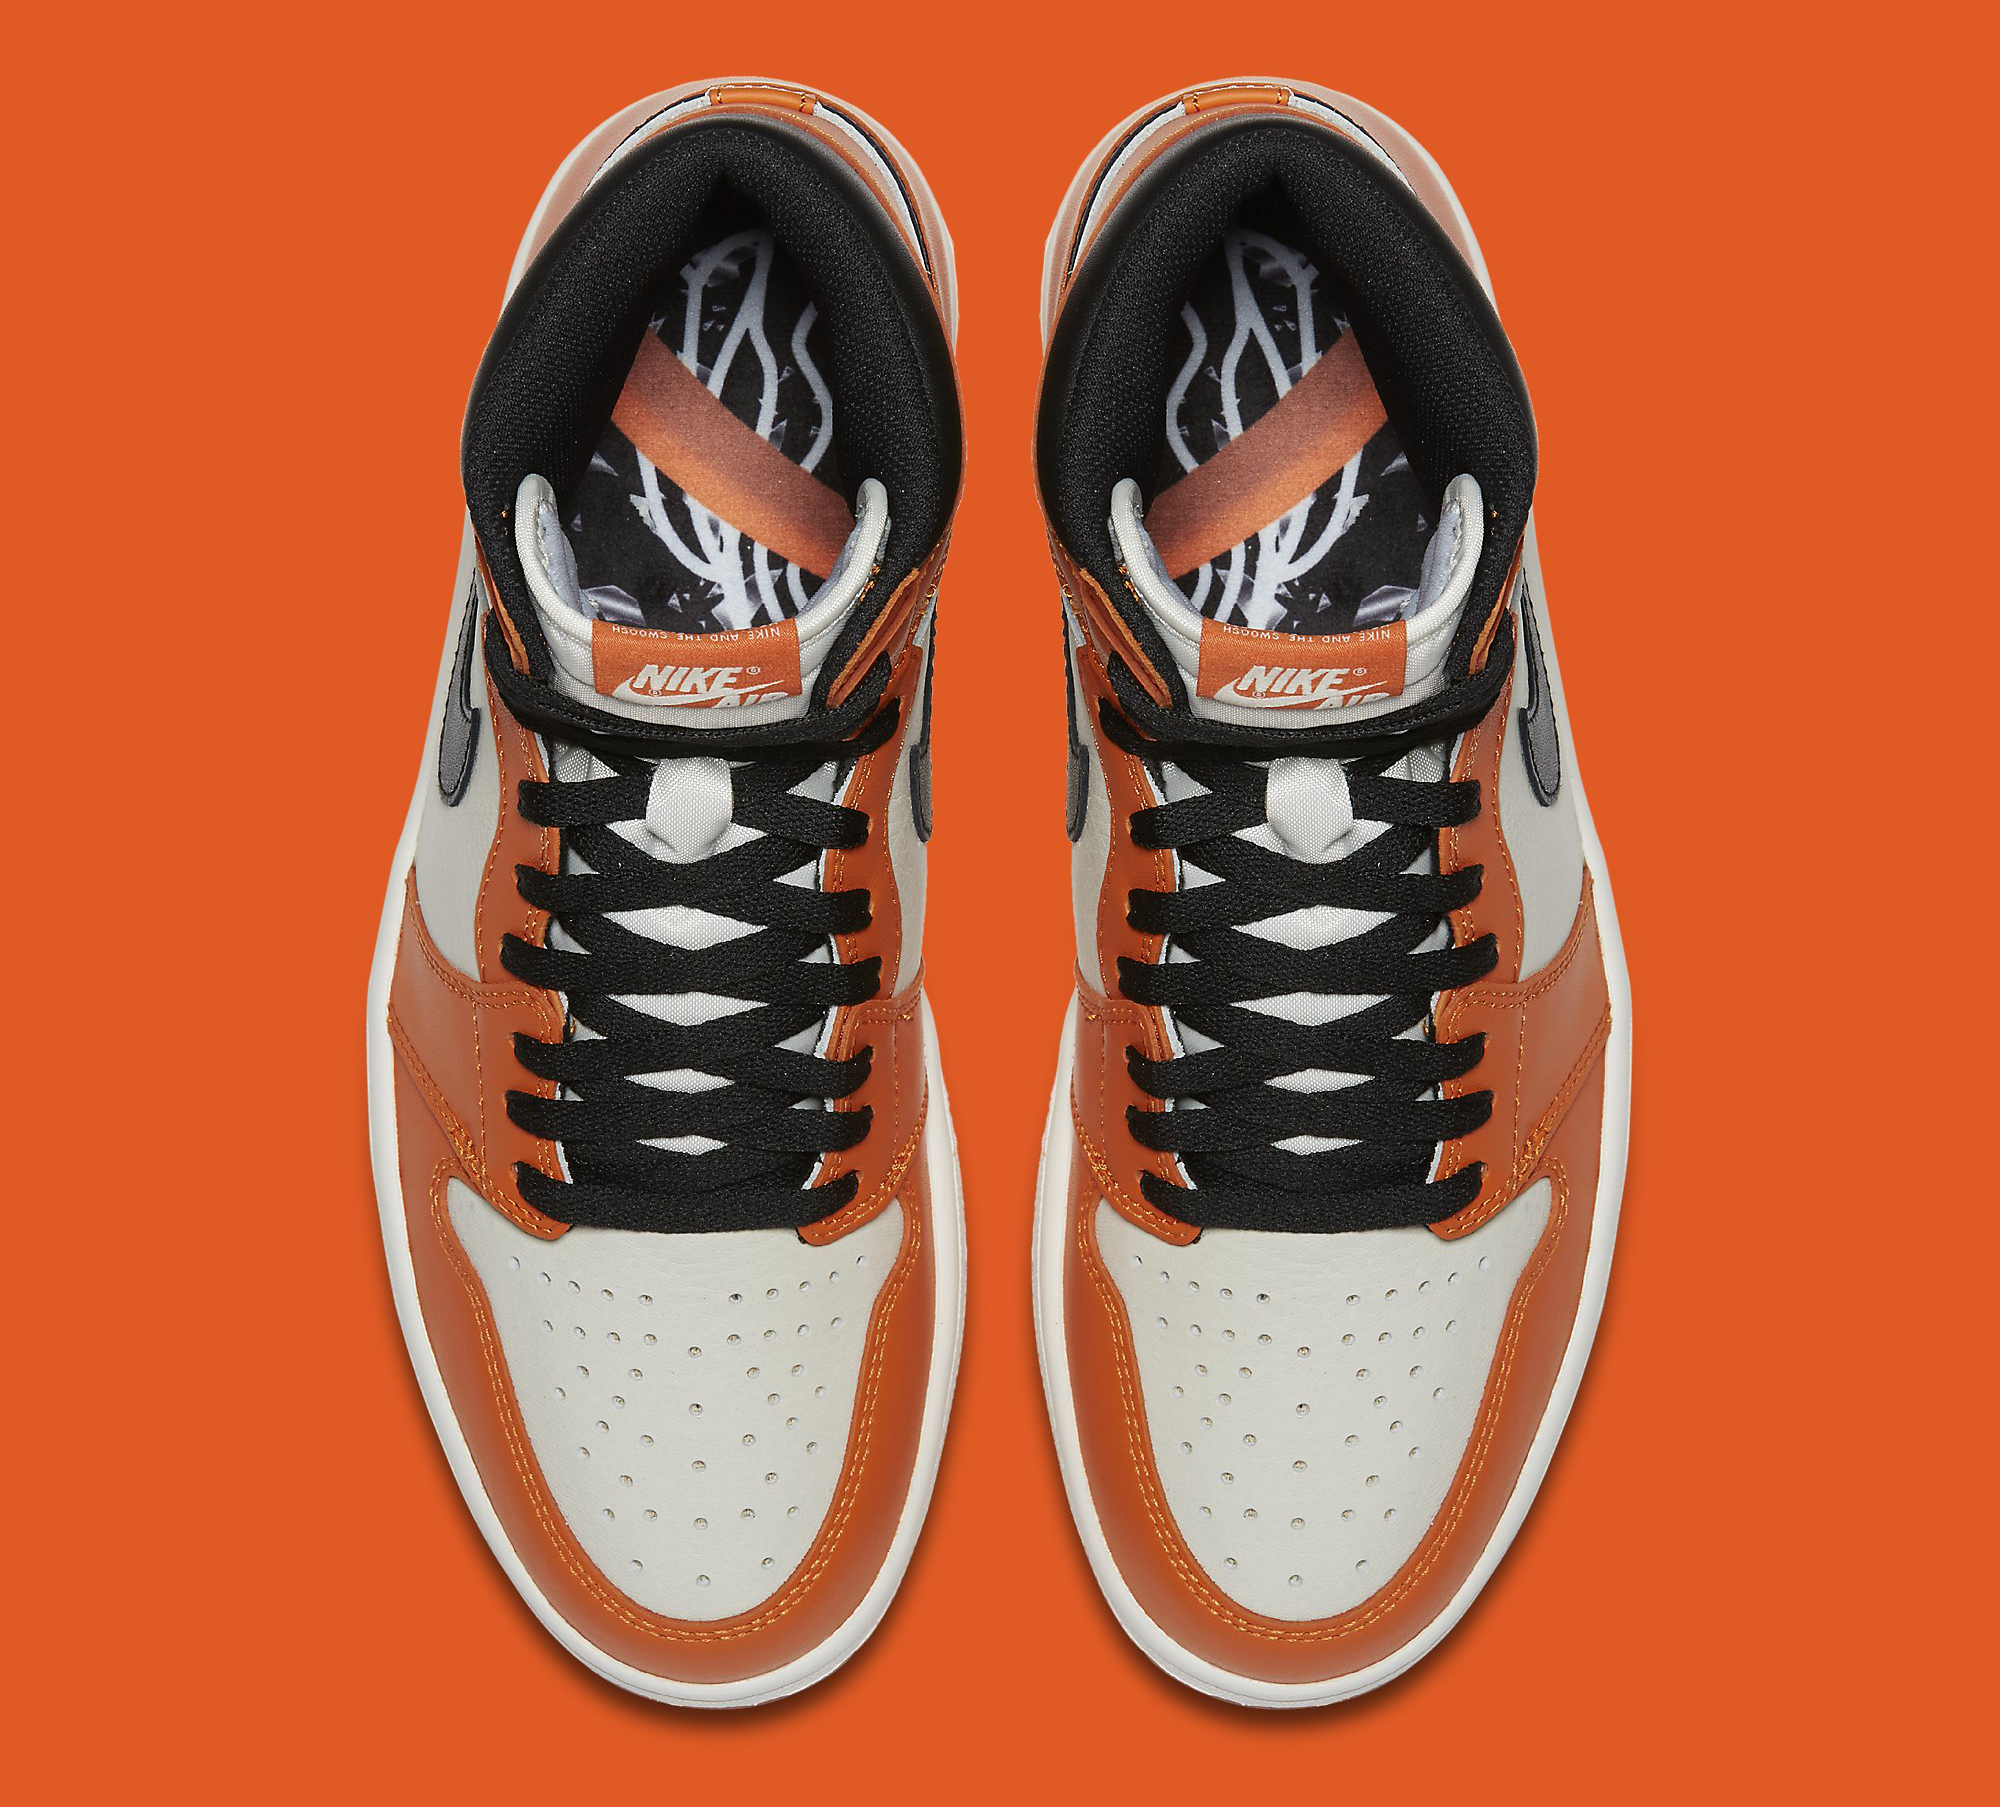 sports shoes 461a6 da73e Image via Nike Air Jordan 1 Shattered Backboard Away 555088-113 Top